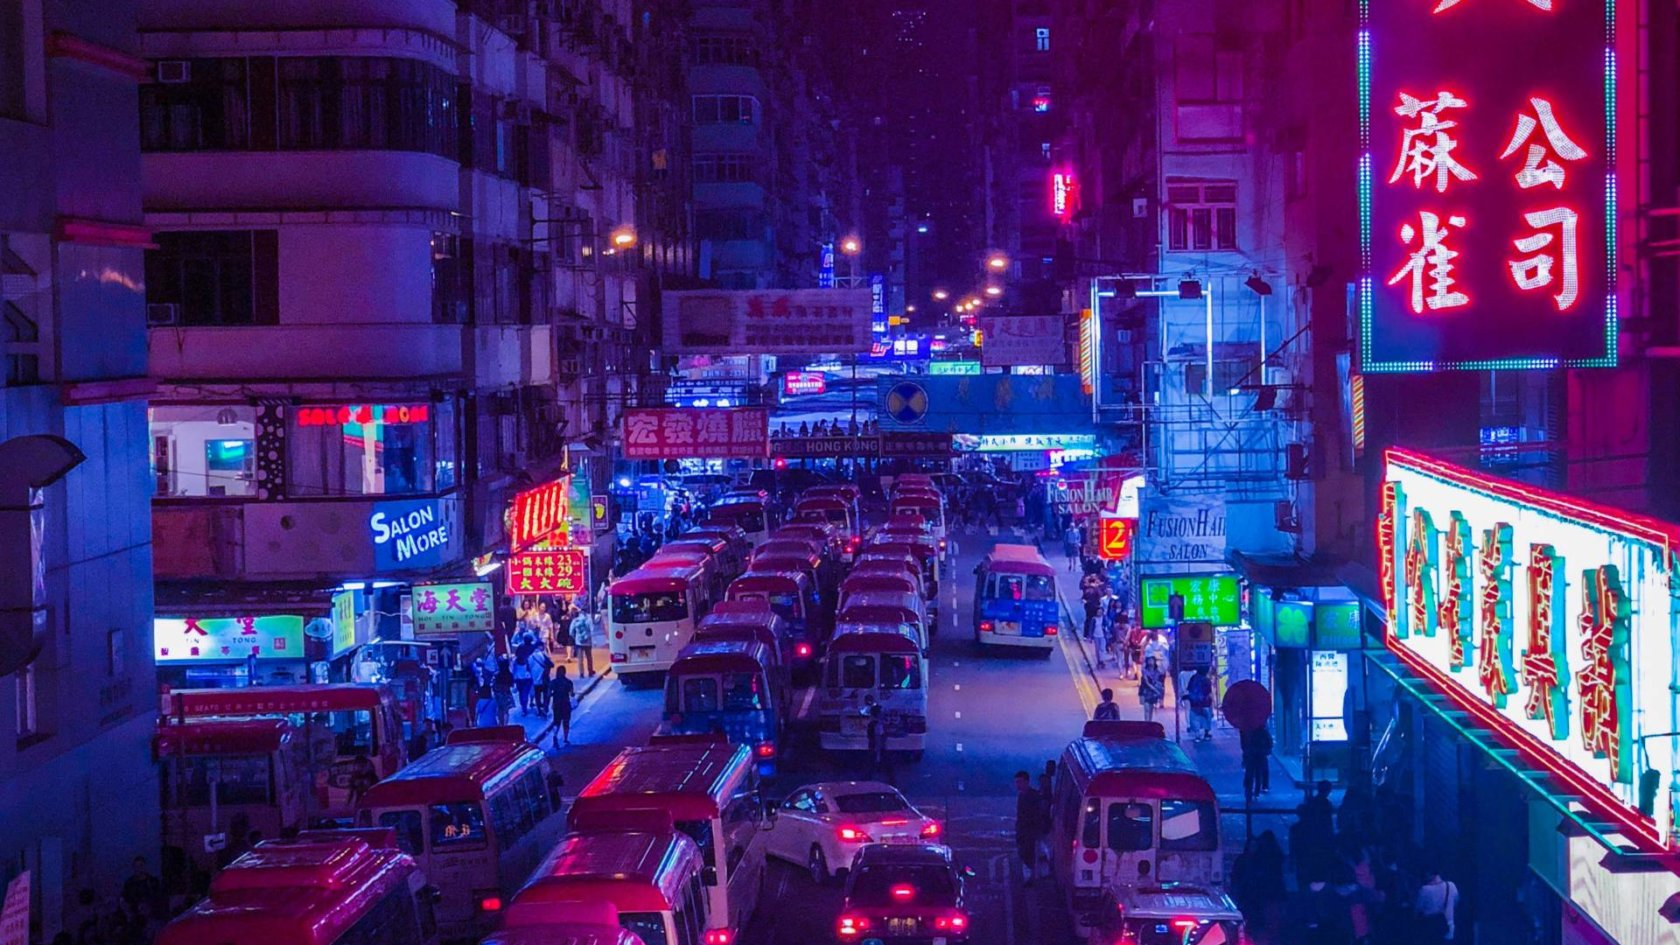 Hong Kong streets by night